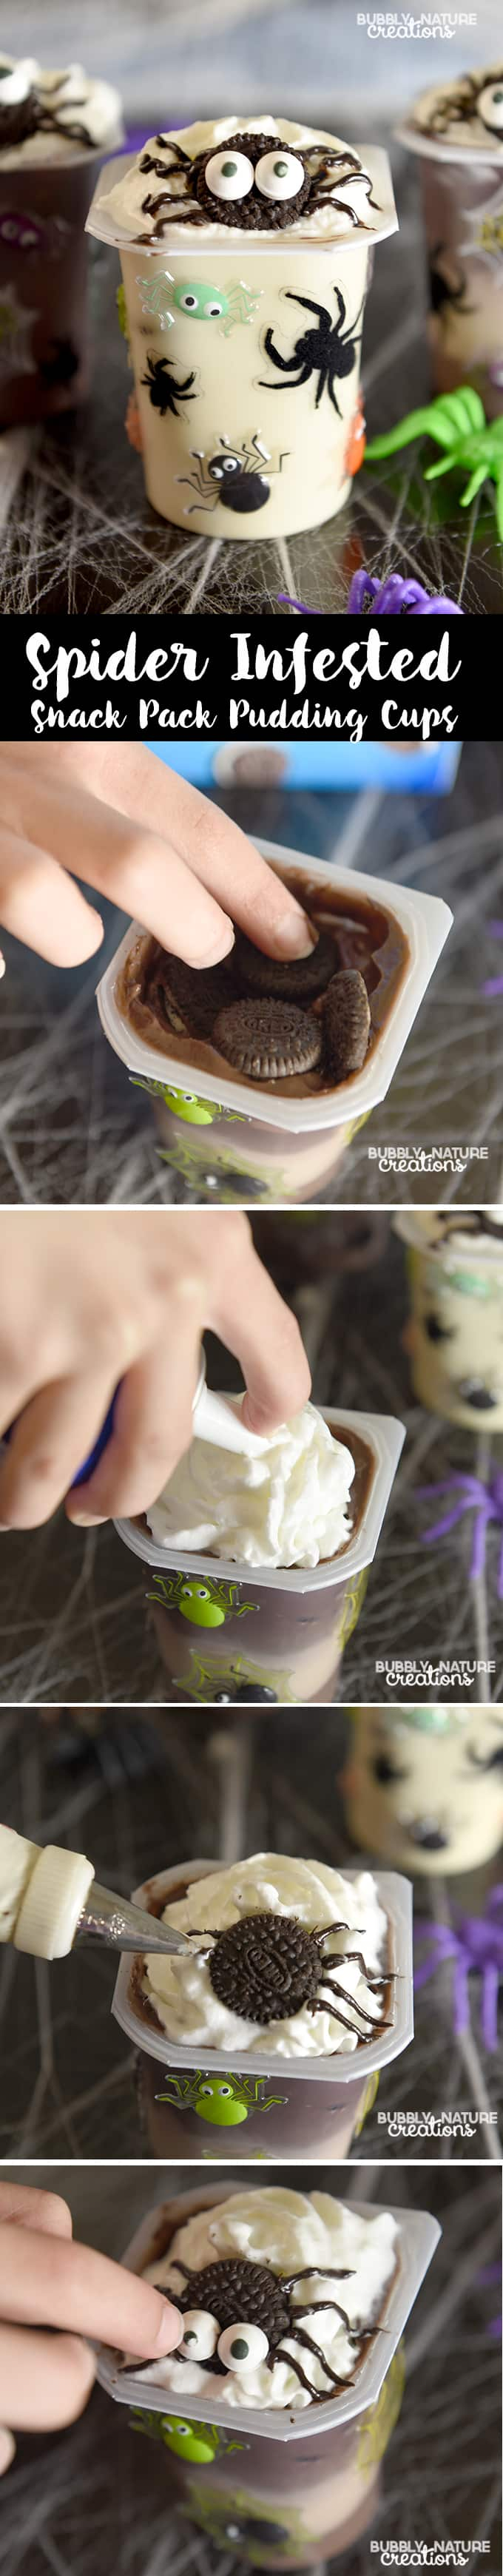 Spider Infested Snack Pack Pudding Cups! Super cute Halloween snack and party idea!